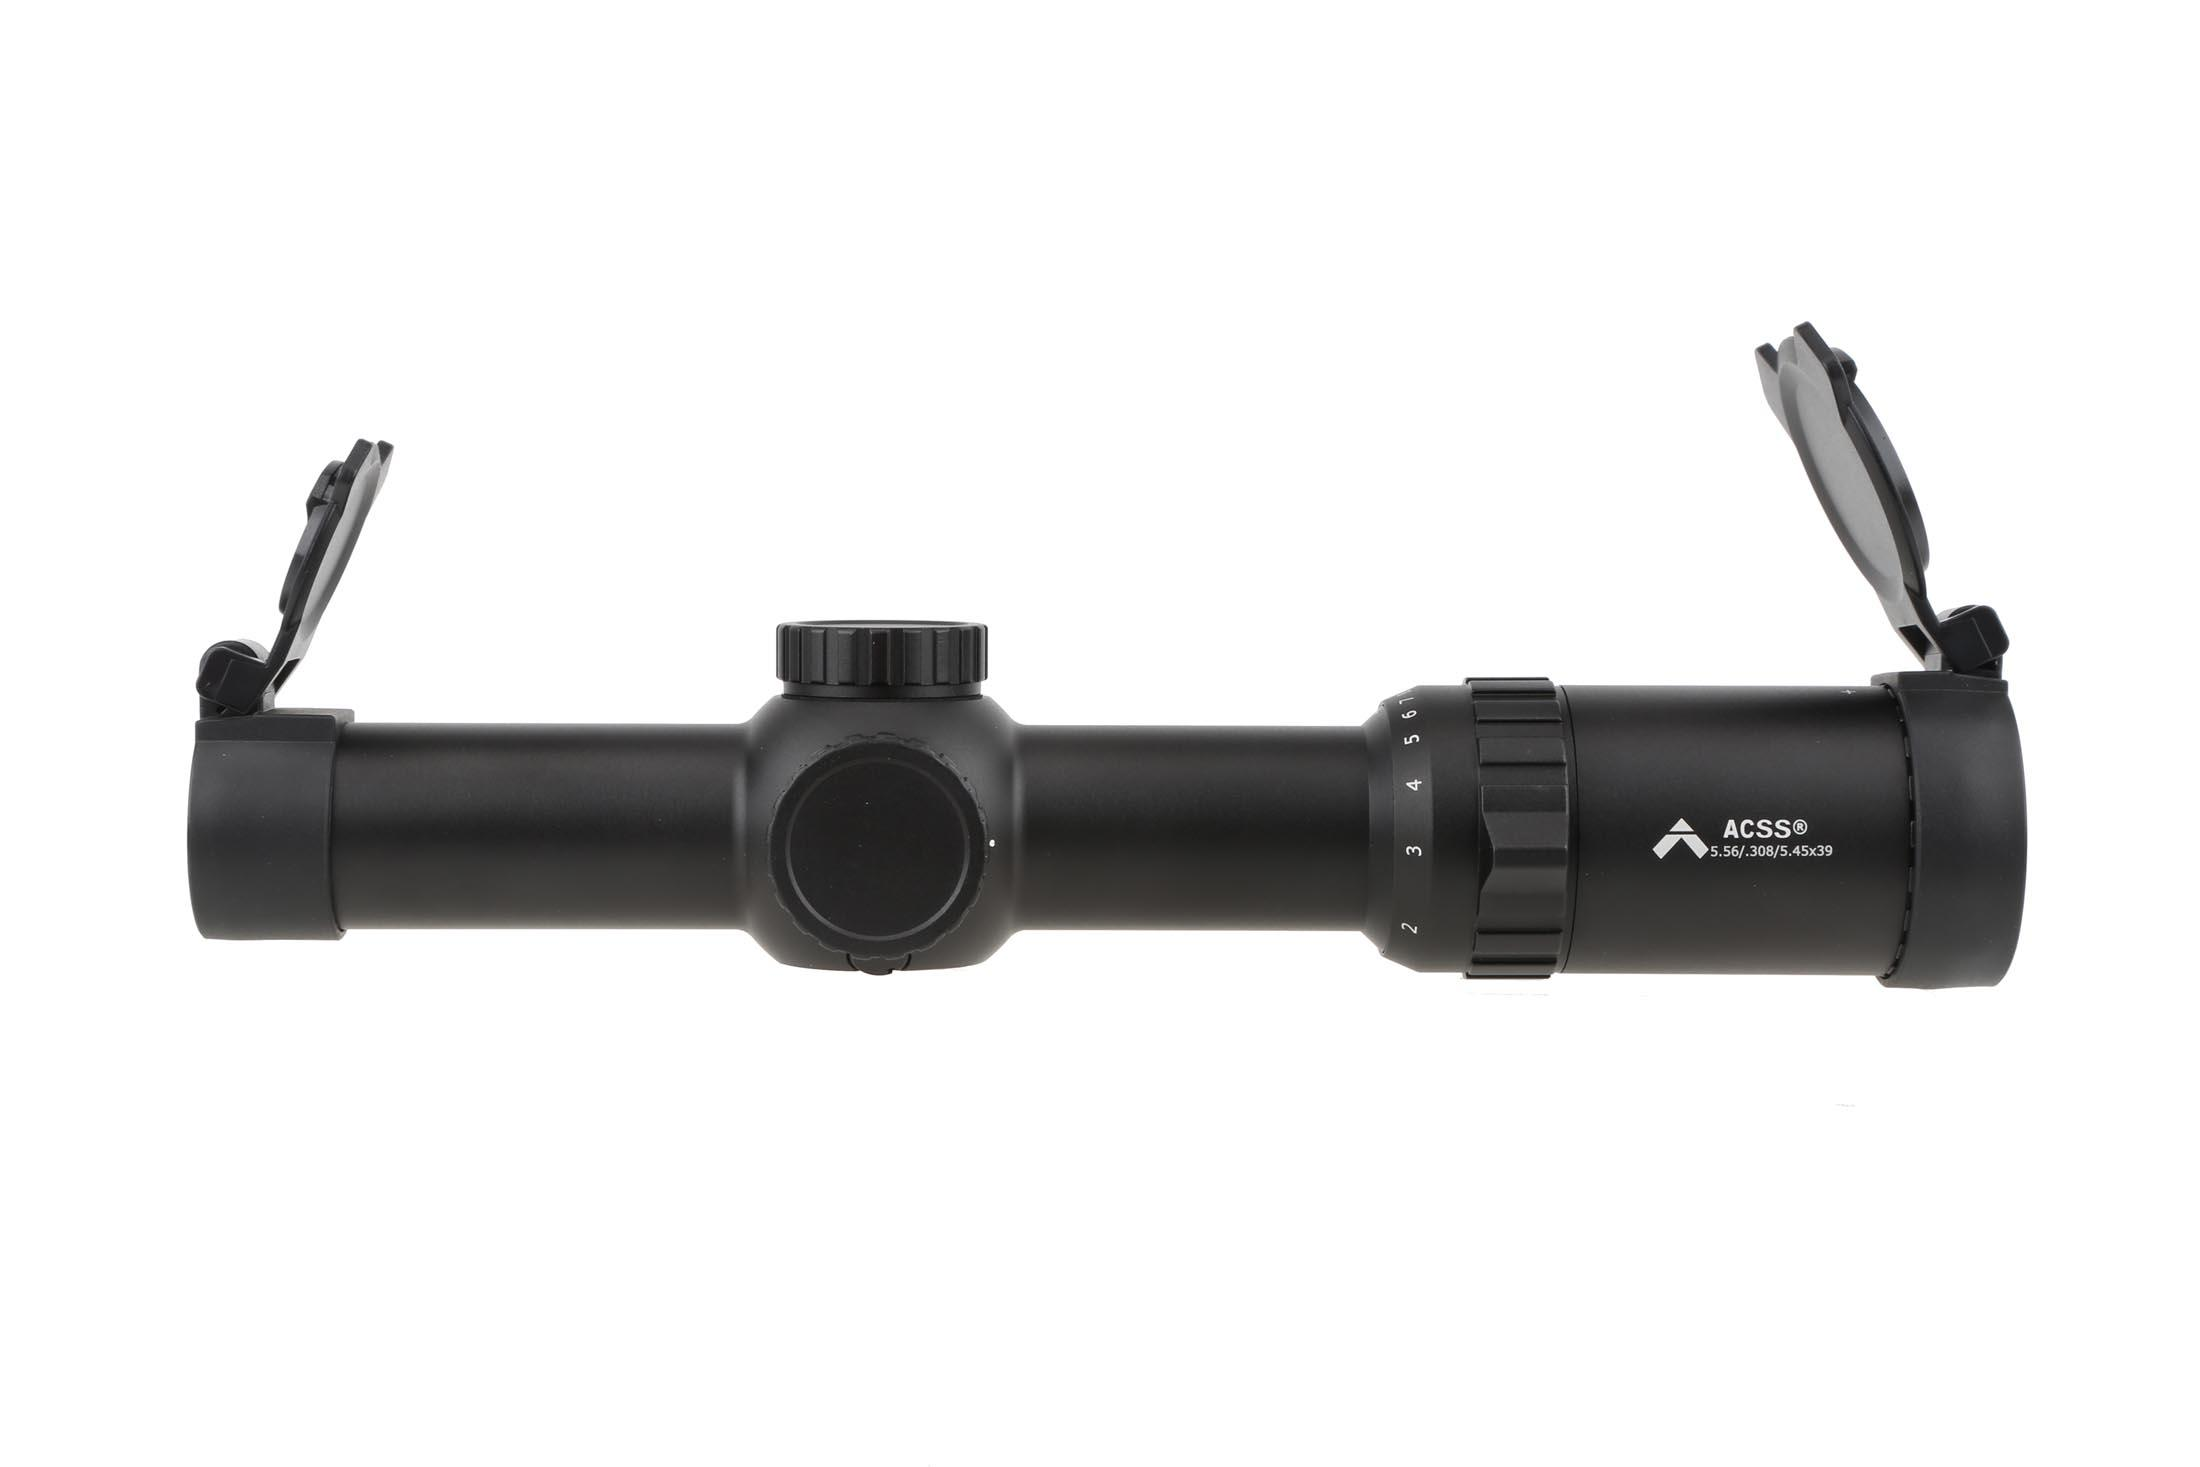 The Primary Arms Optics 1-8x scope has a 30mm tube diameter